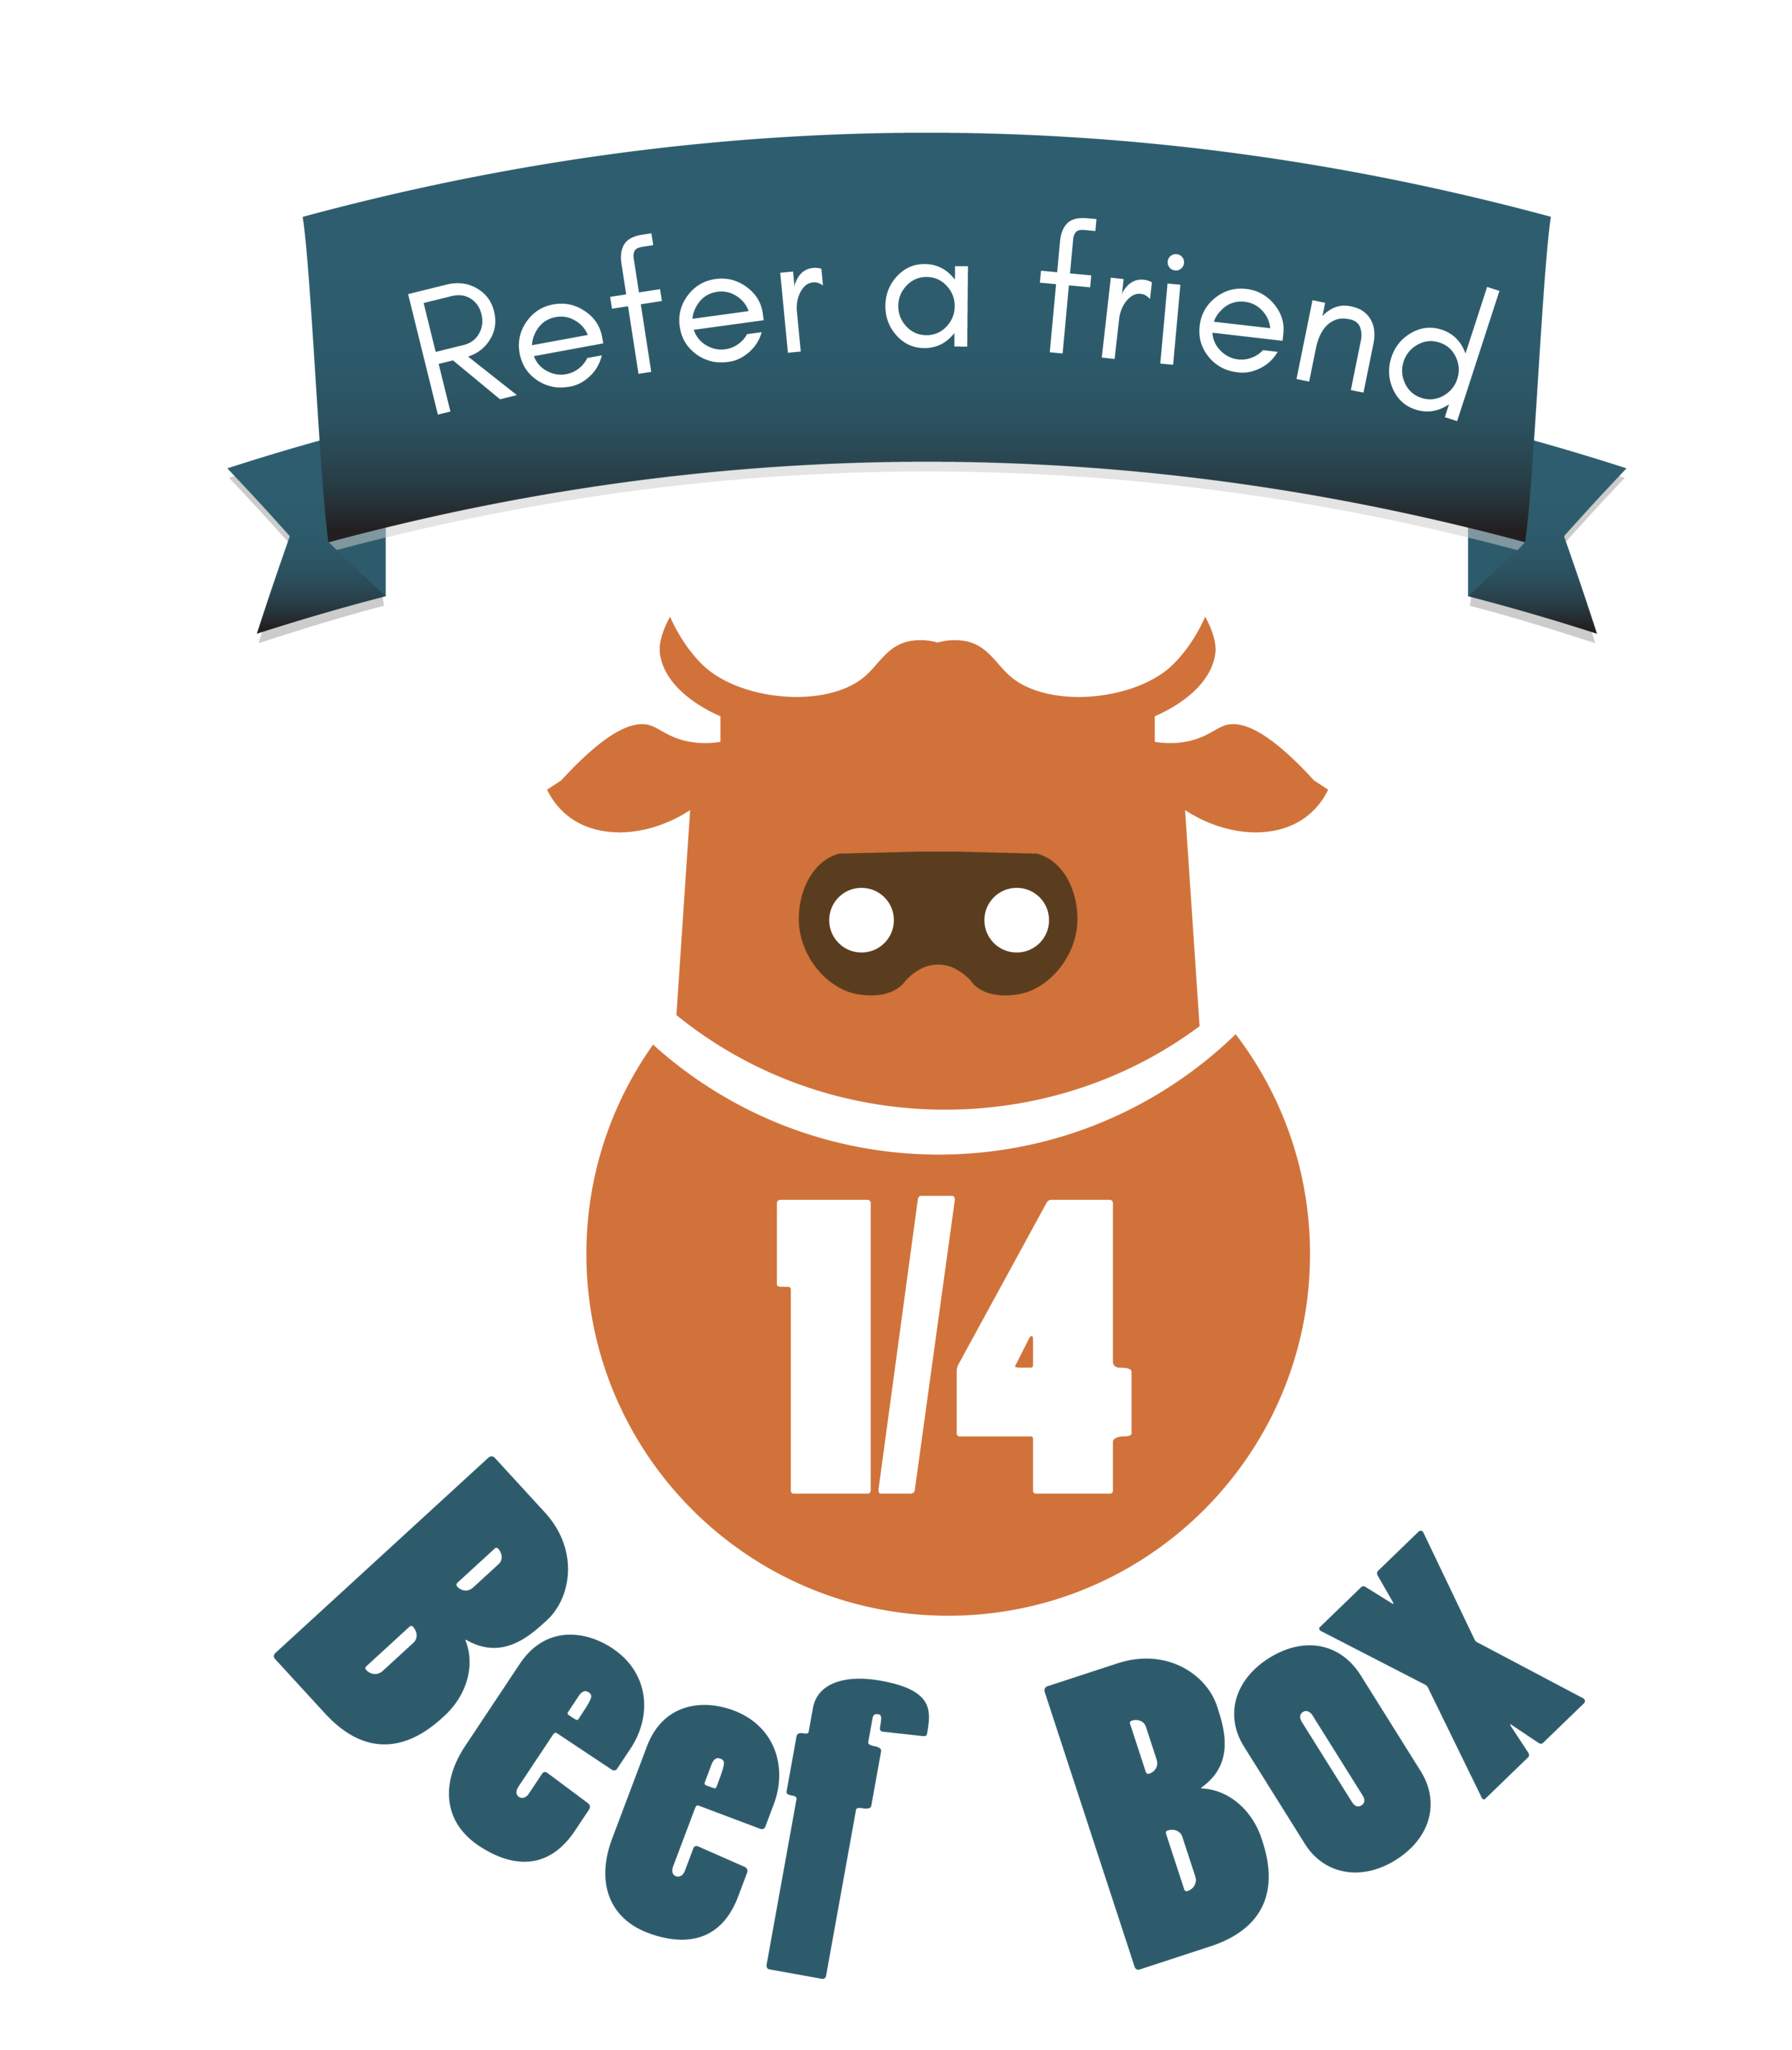 5_20_Refer a friend-01.png